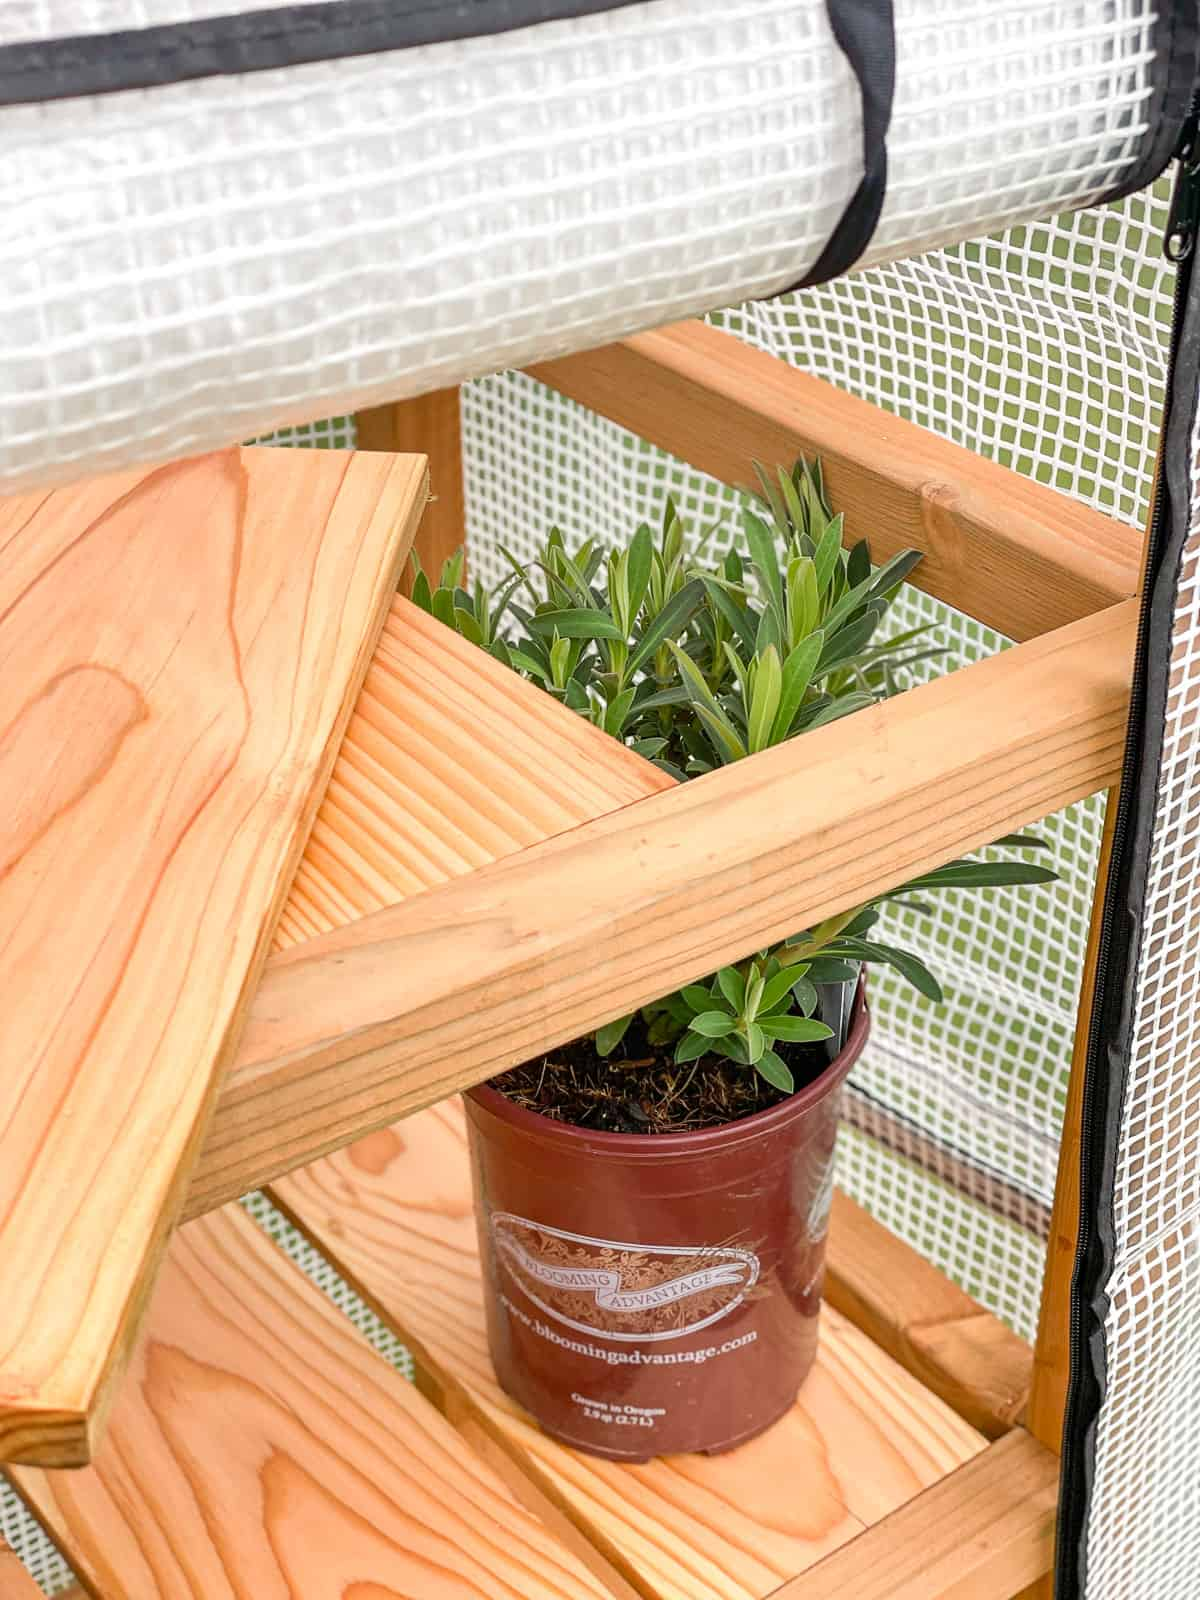 DIY mini greenhouse with shelf slat removed to allow plants to grow taller